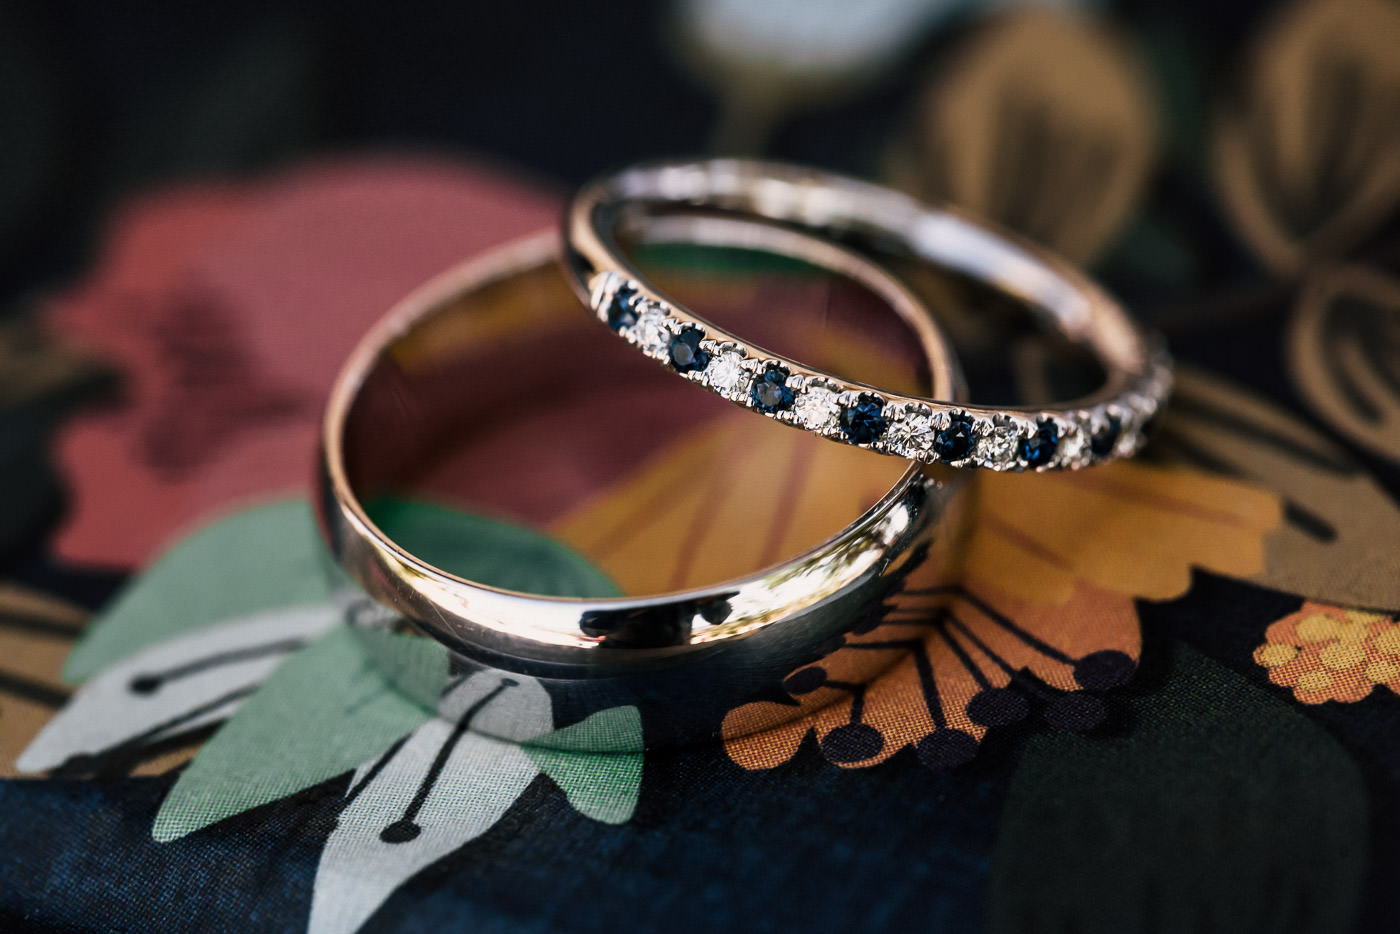 beautiful wedding rings sit atop a floral pattern